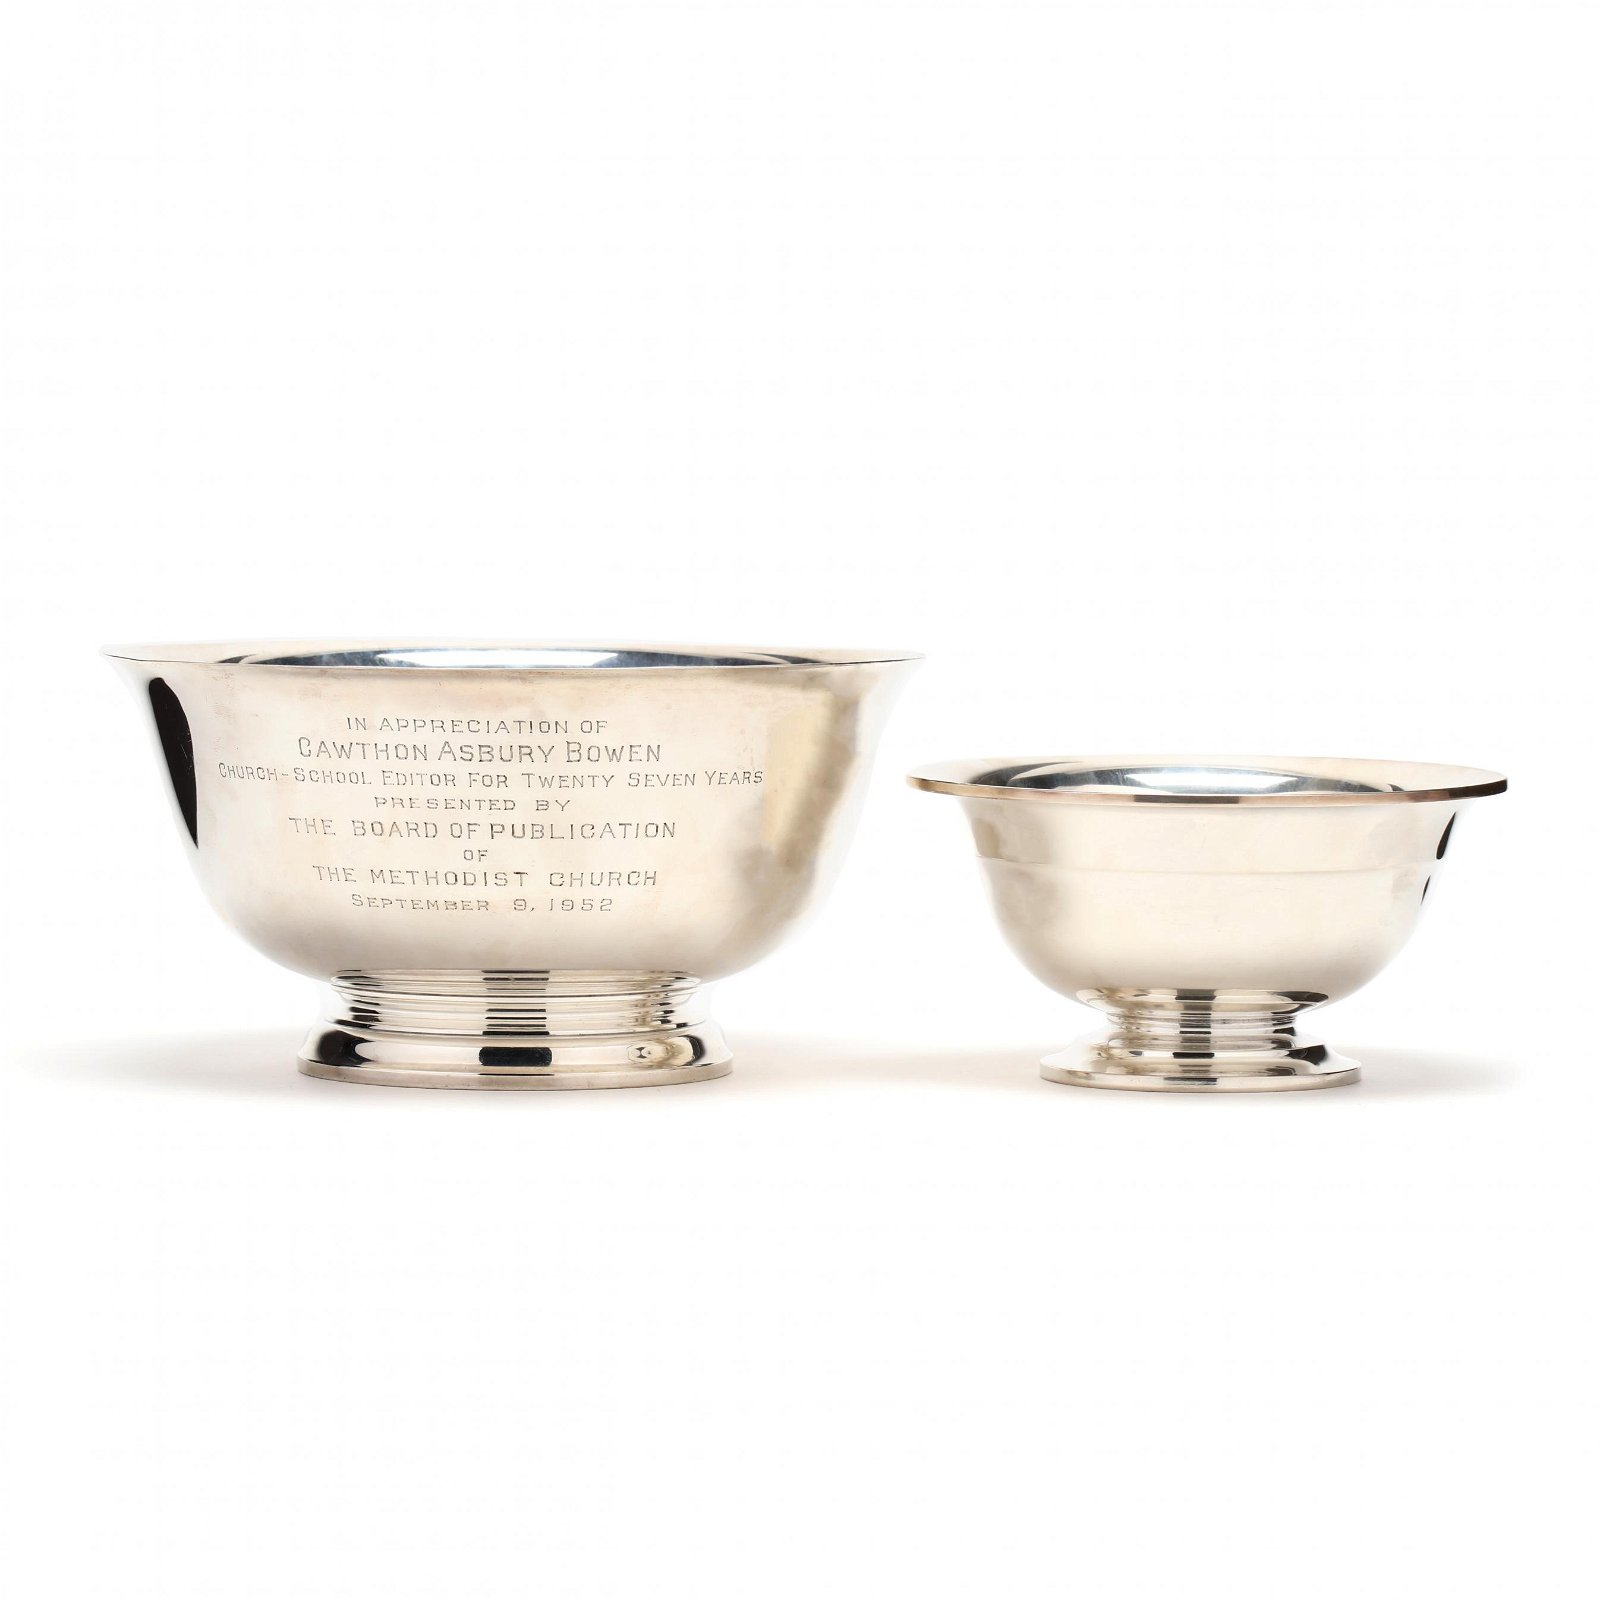 Two Sterling Silver Revere Bowls